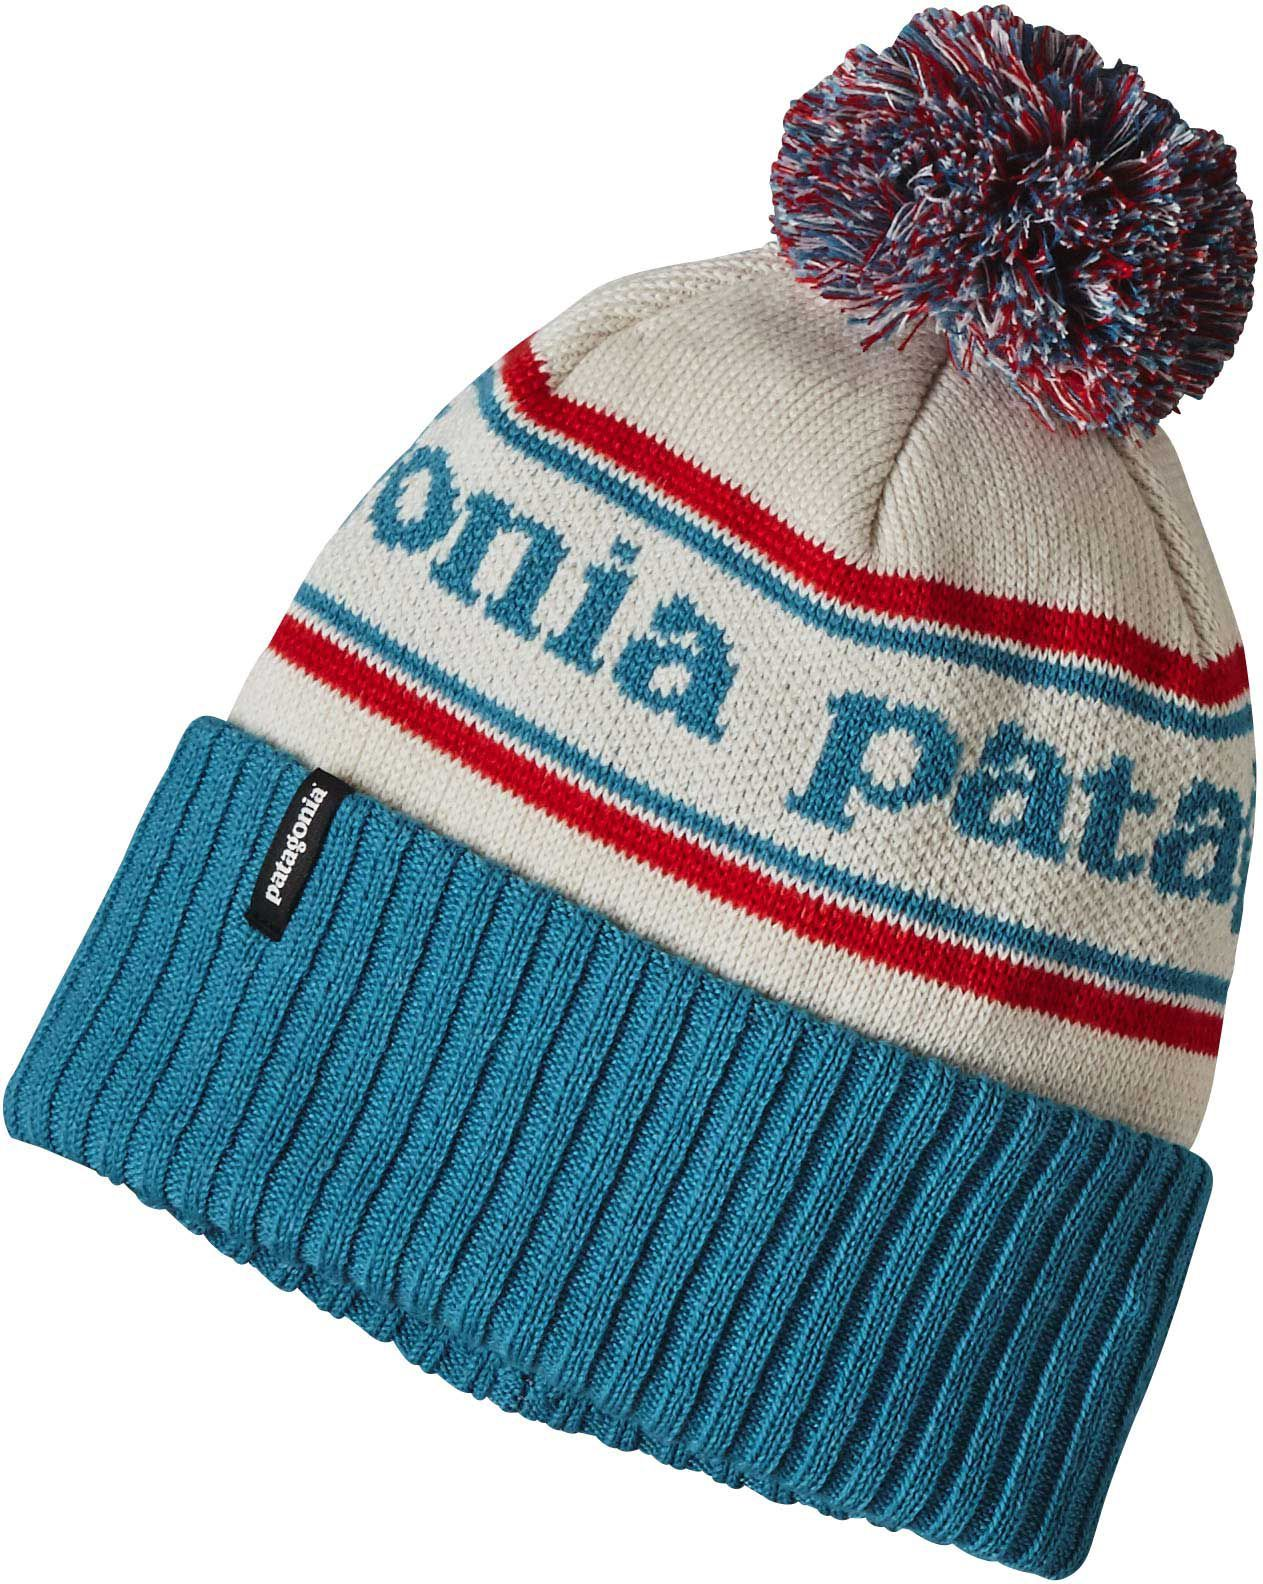 4c698aa457cc4 Patagonia Men s Powder Town Beanie in 2019